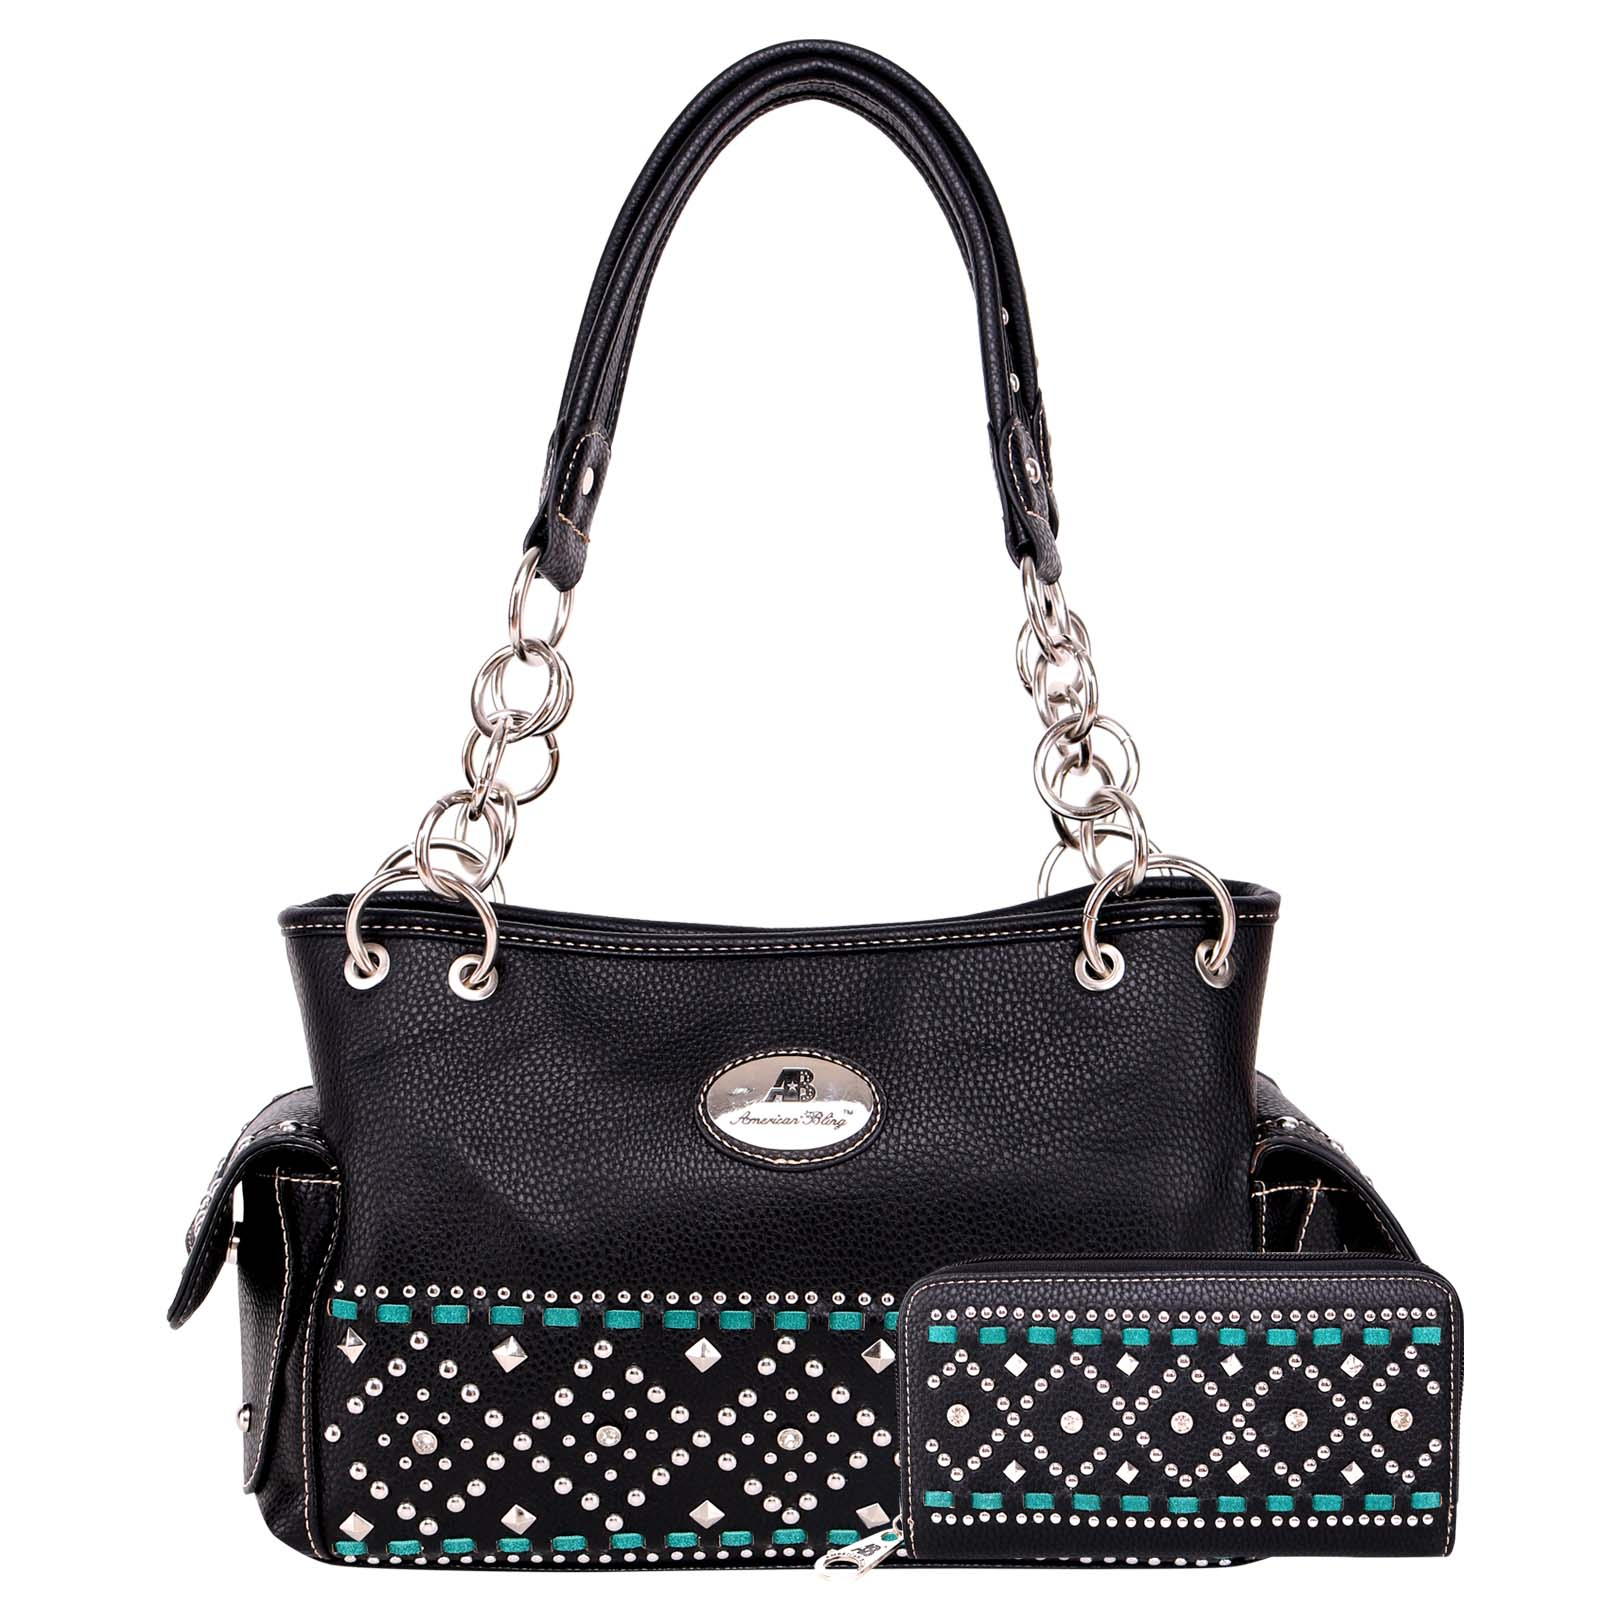 Satchel handbag American bling